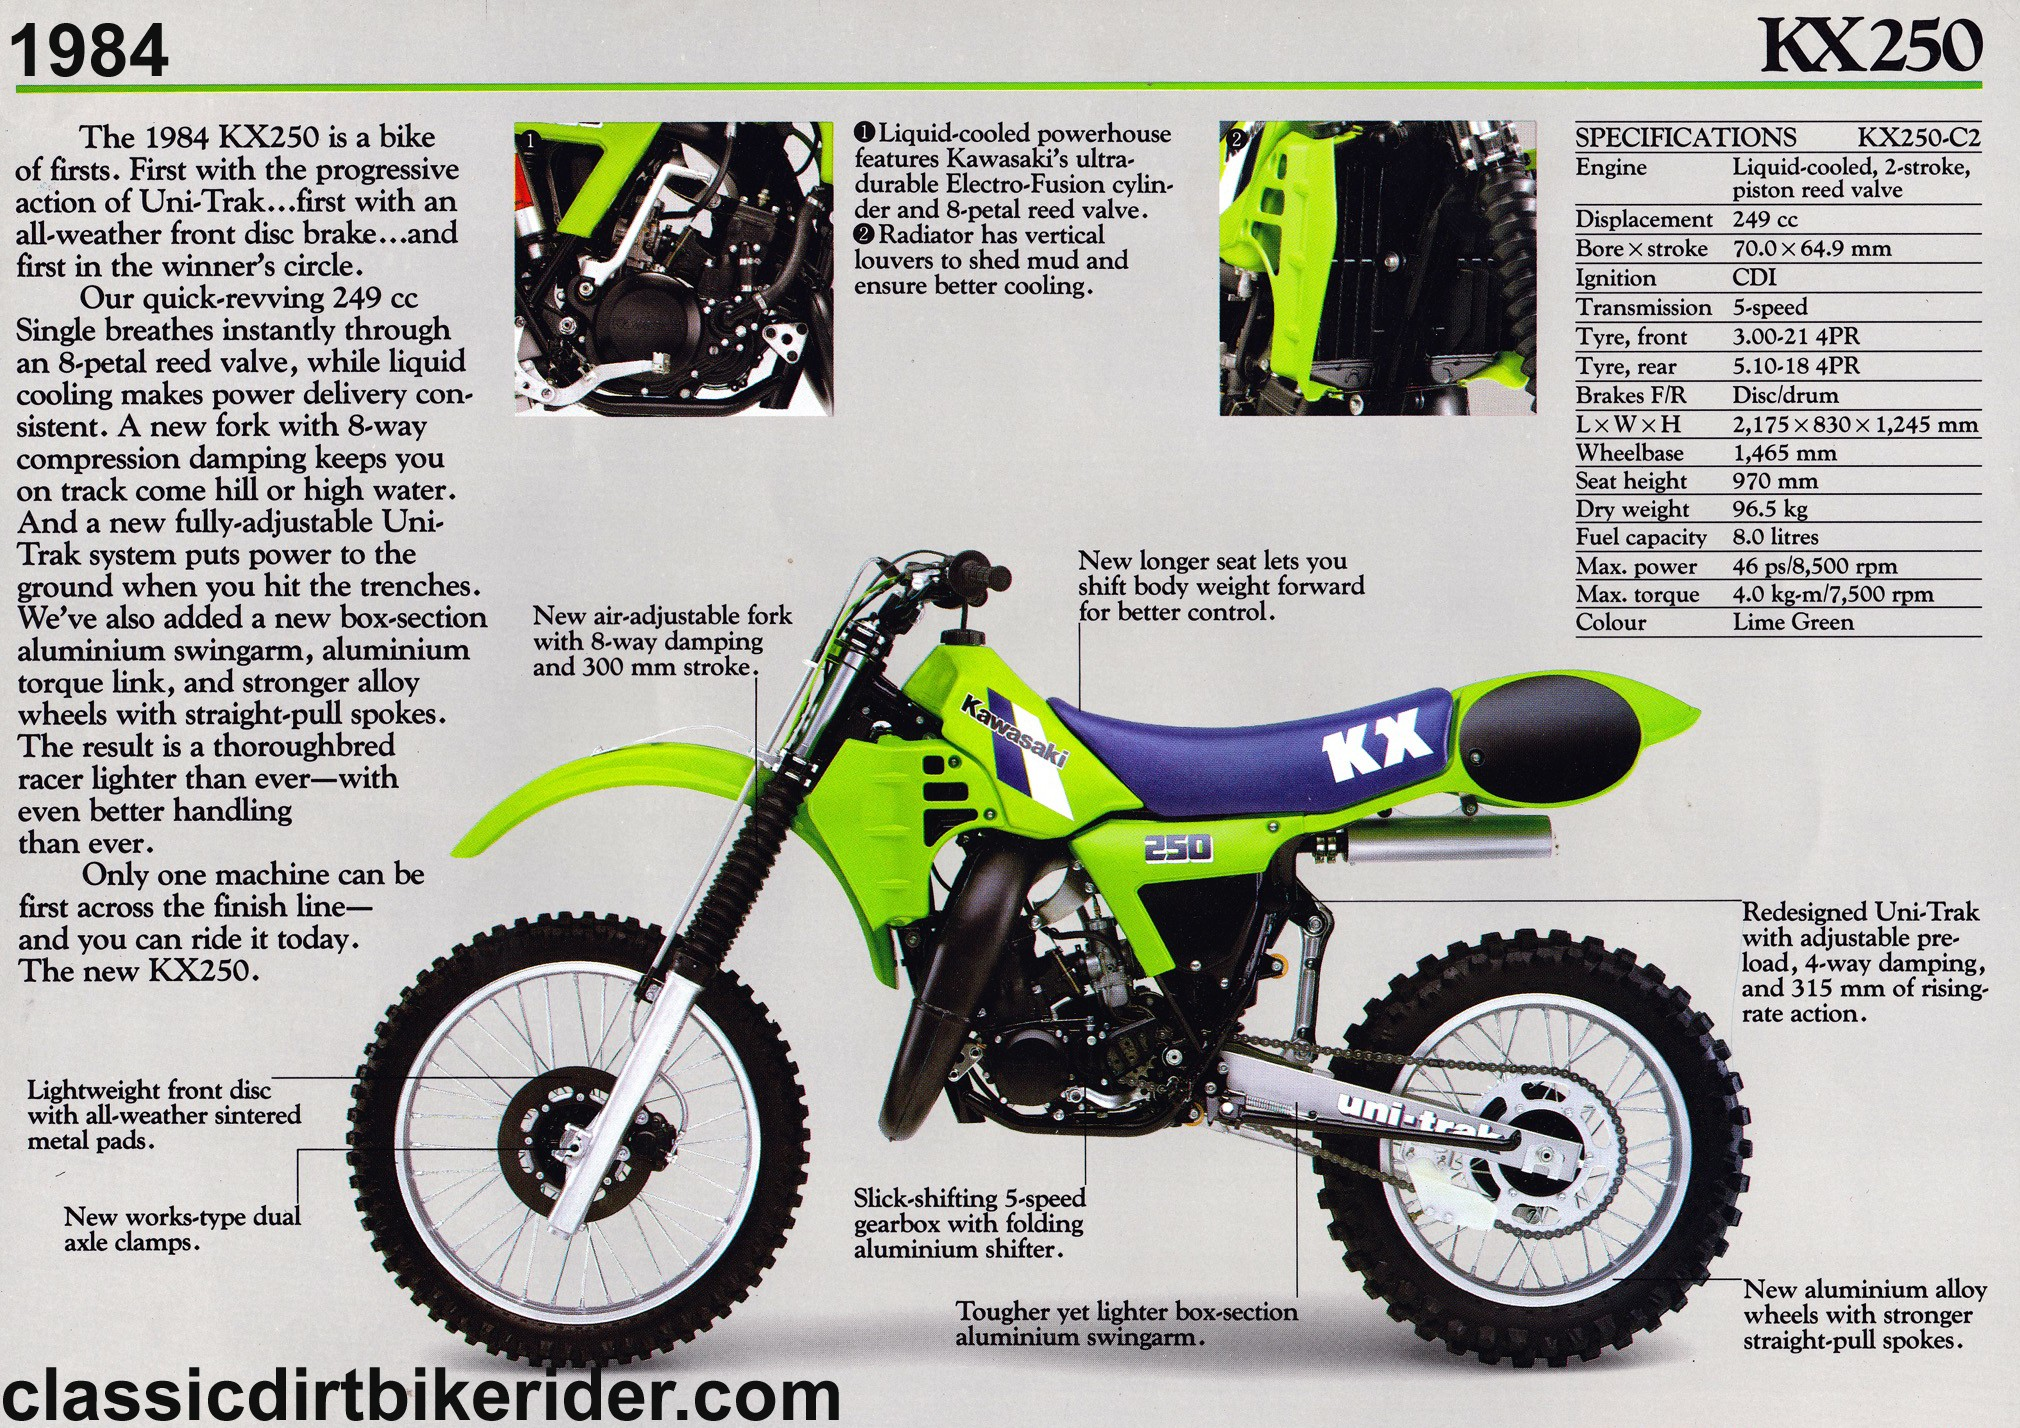 Kx 250 Engine Diagram Kawasaki Kx250 1980 89 Spotters Guide Of Kx 250 Engine Diagram